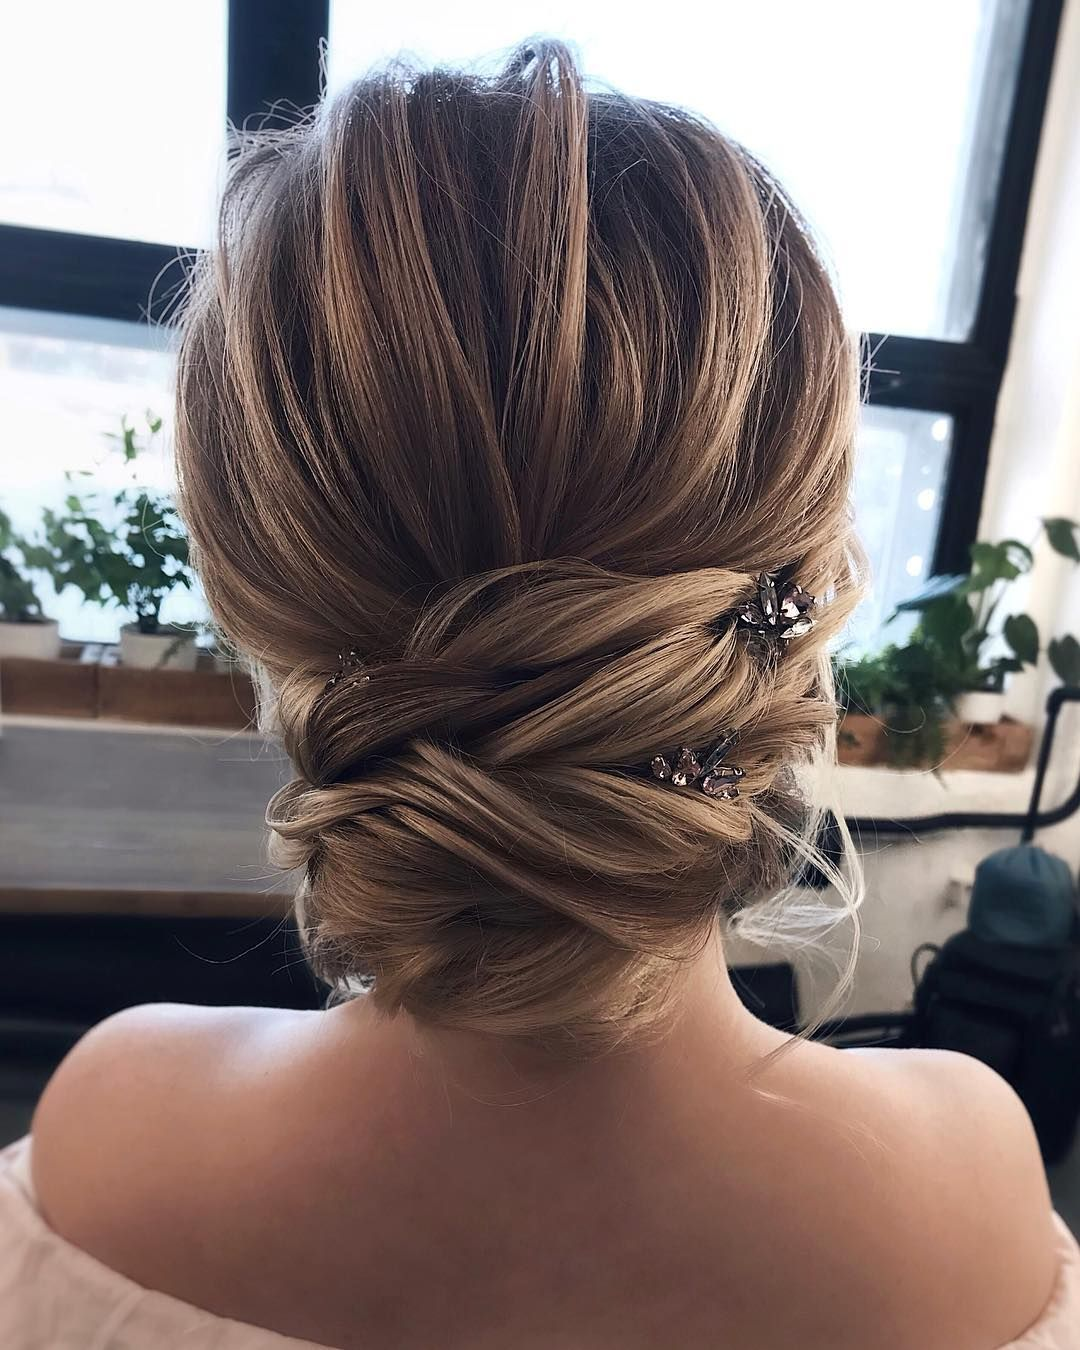 Fabulous Hairstyles For Every Wedding Dress Neckline Whether You Re A Summer Win Strapless Dress Hairstyles Simple Prom Hair Wedding Hairstyles For Long Hair